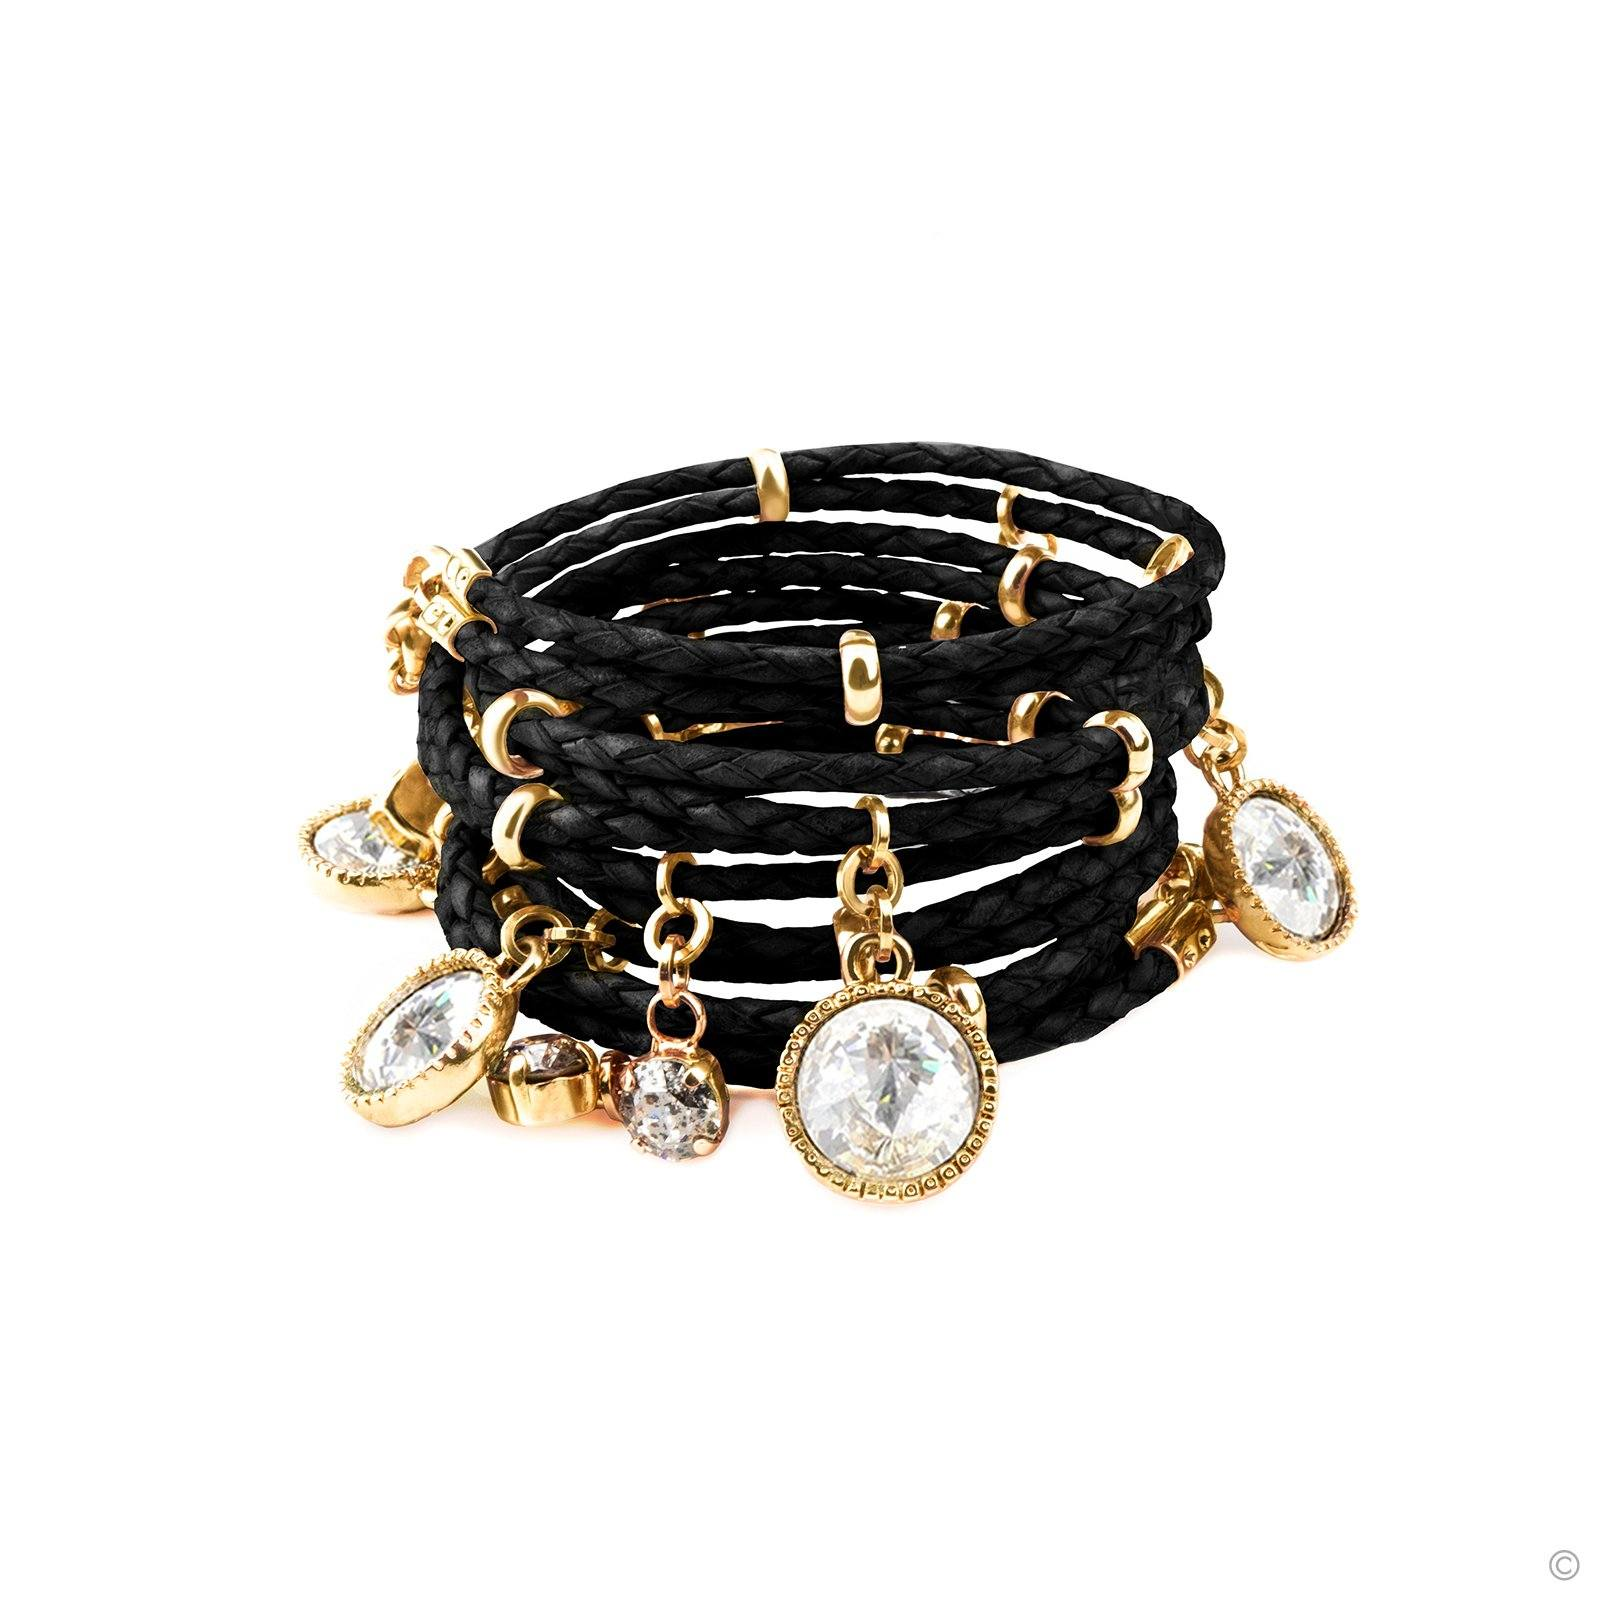 Daydream Leather Bracelet - Black & Gold